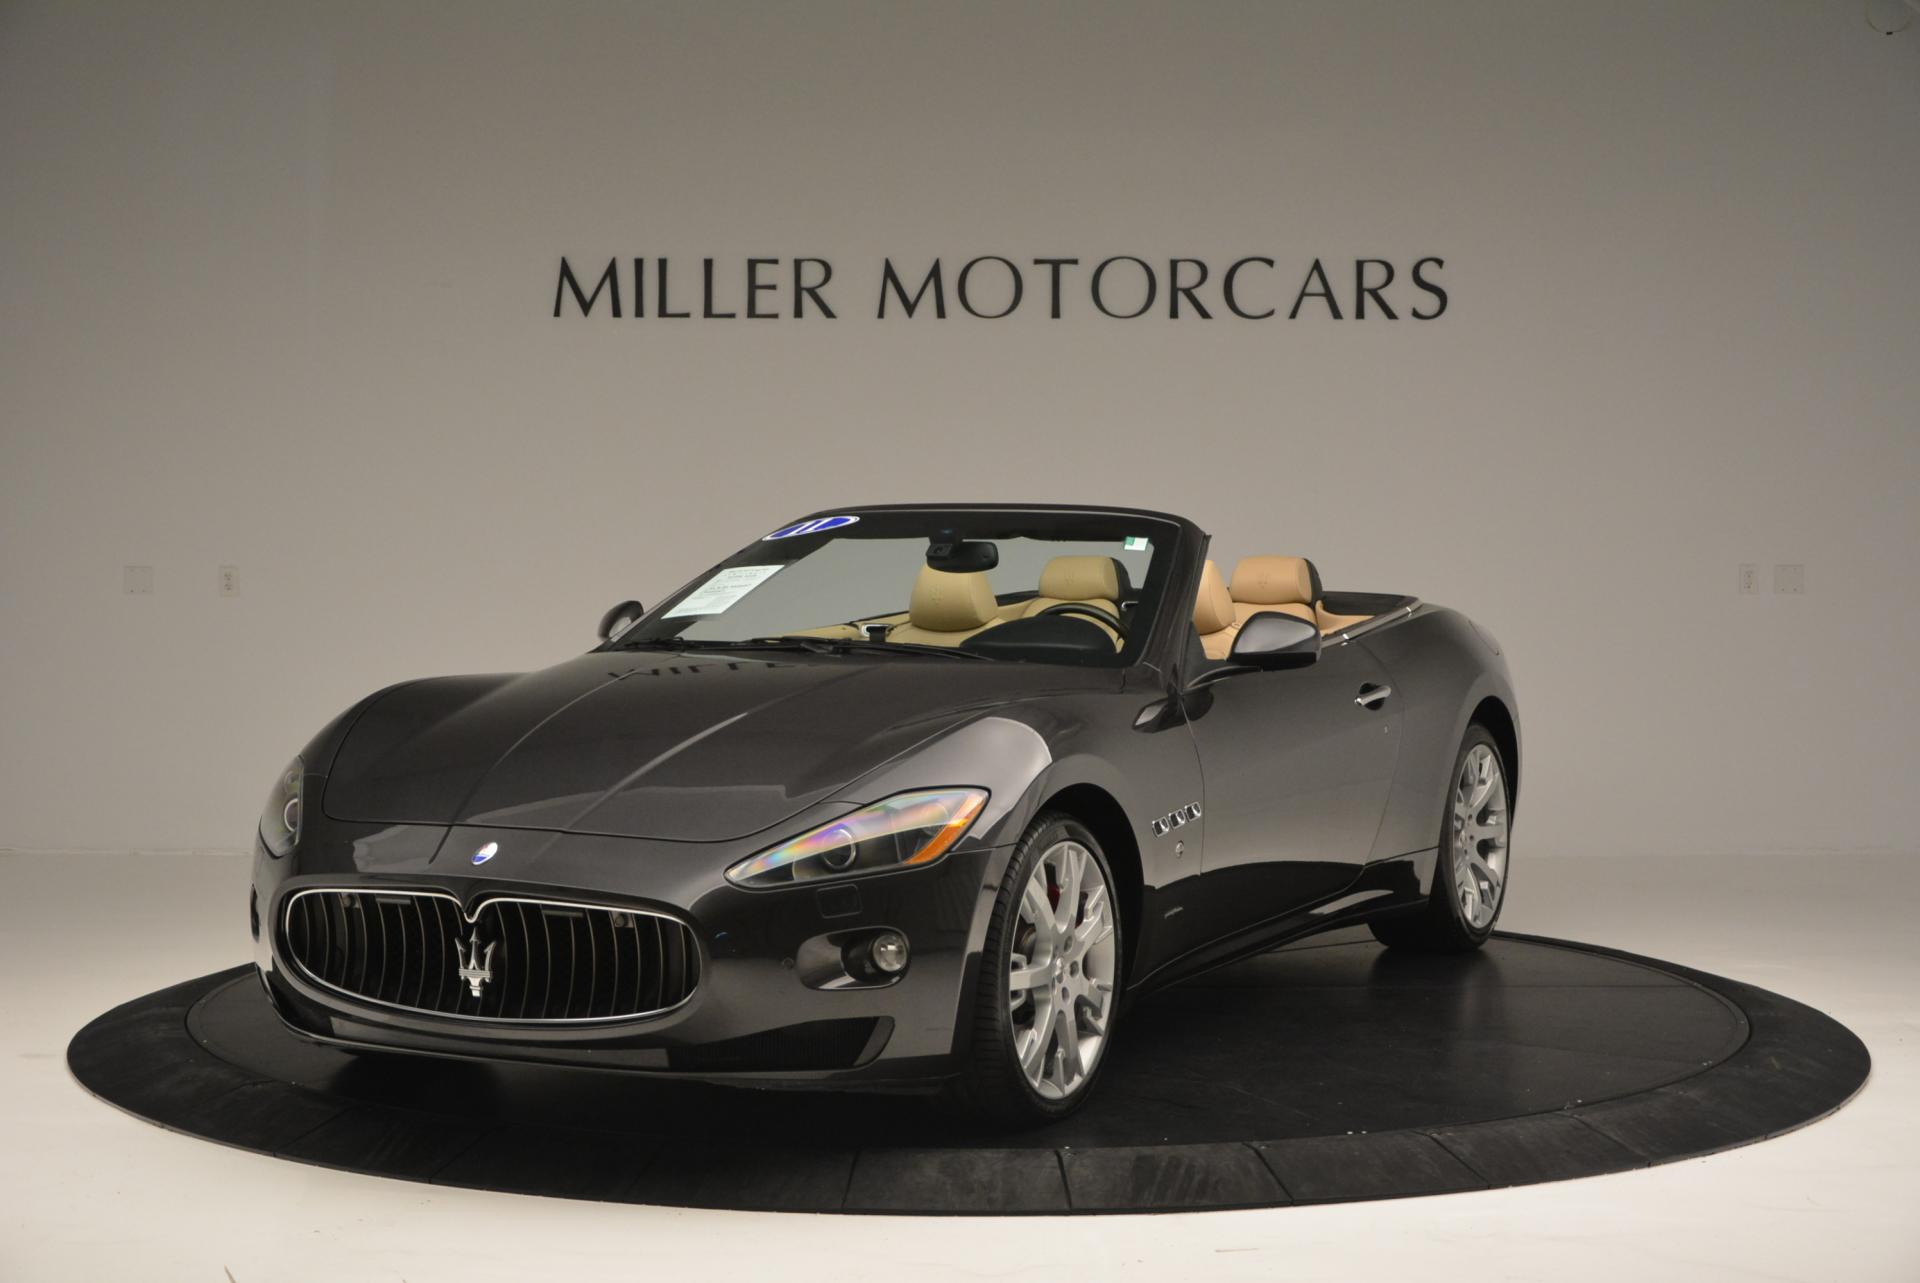 Used 2011 Maserati GranTurismo Base for sale Sold at McLaren Greenwich in Greenwich CT 06830 1